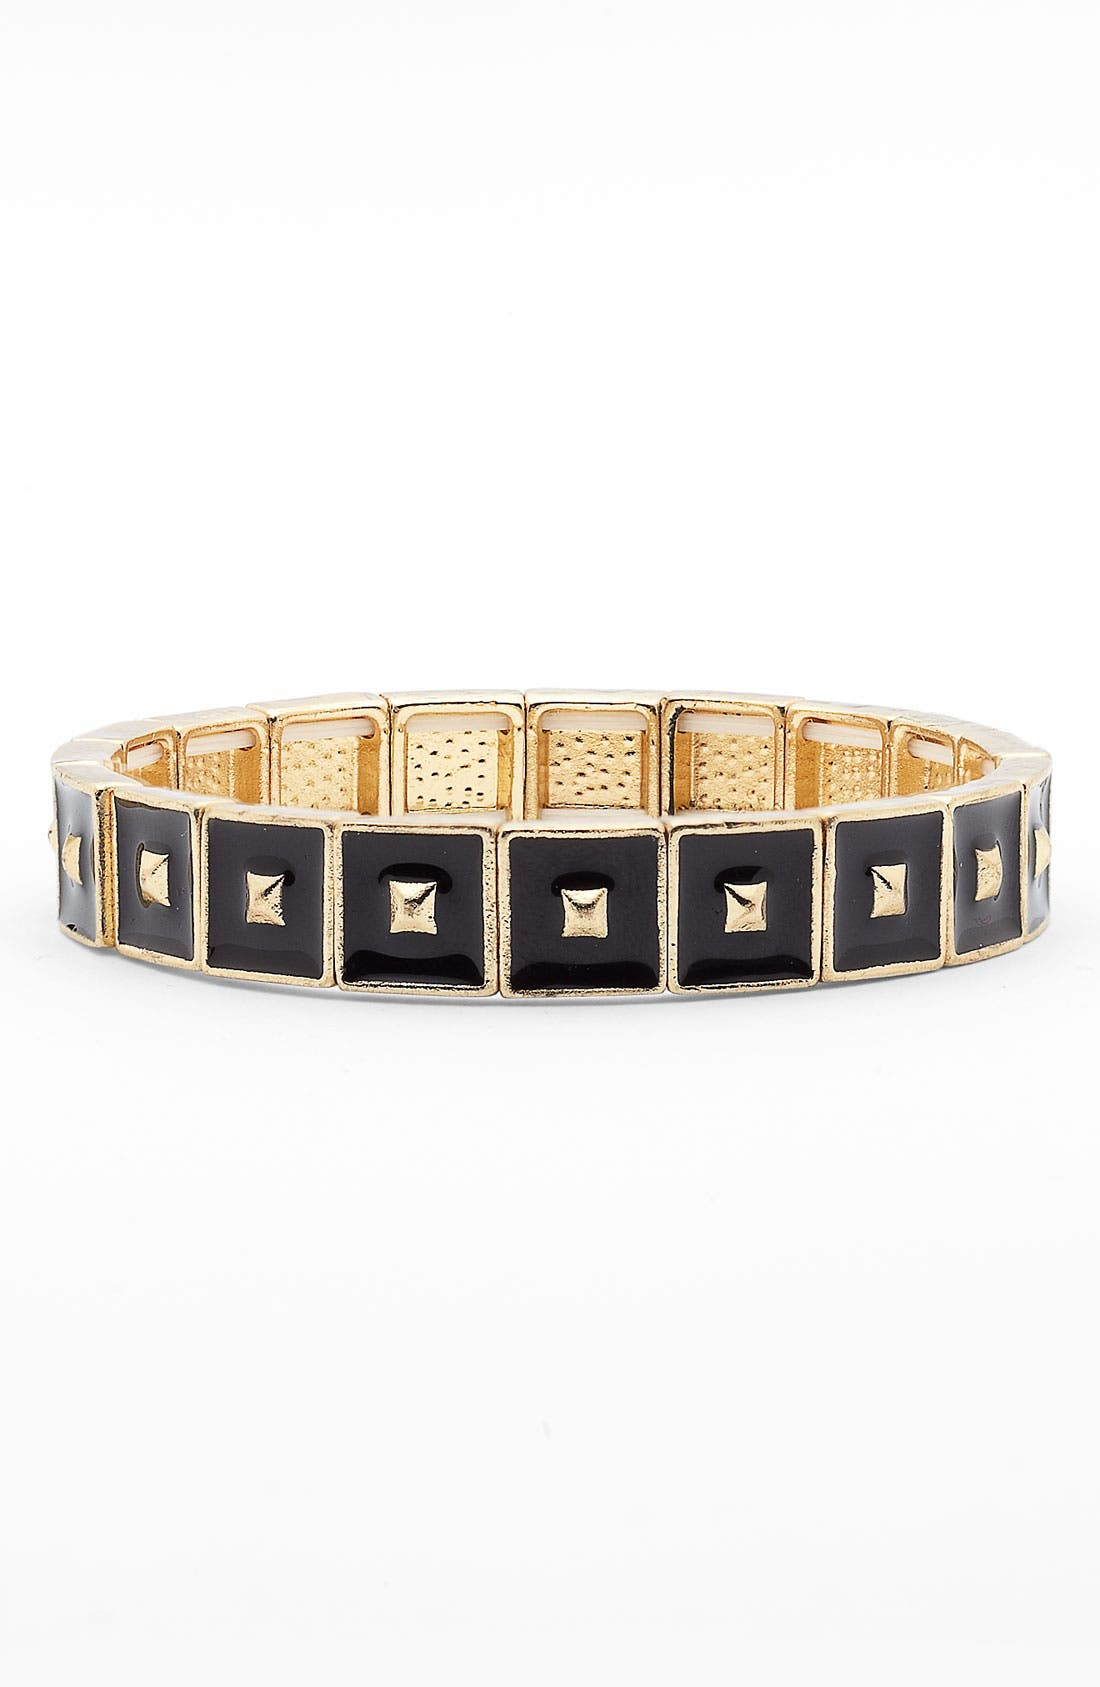 Main Image - Stephan & Co. Deco Stretch Bracelet